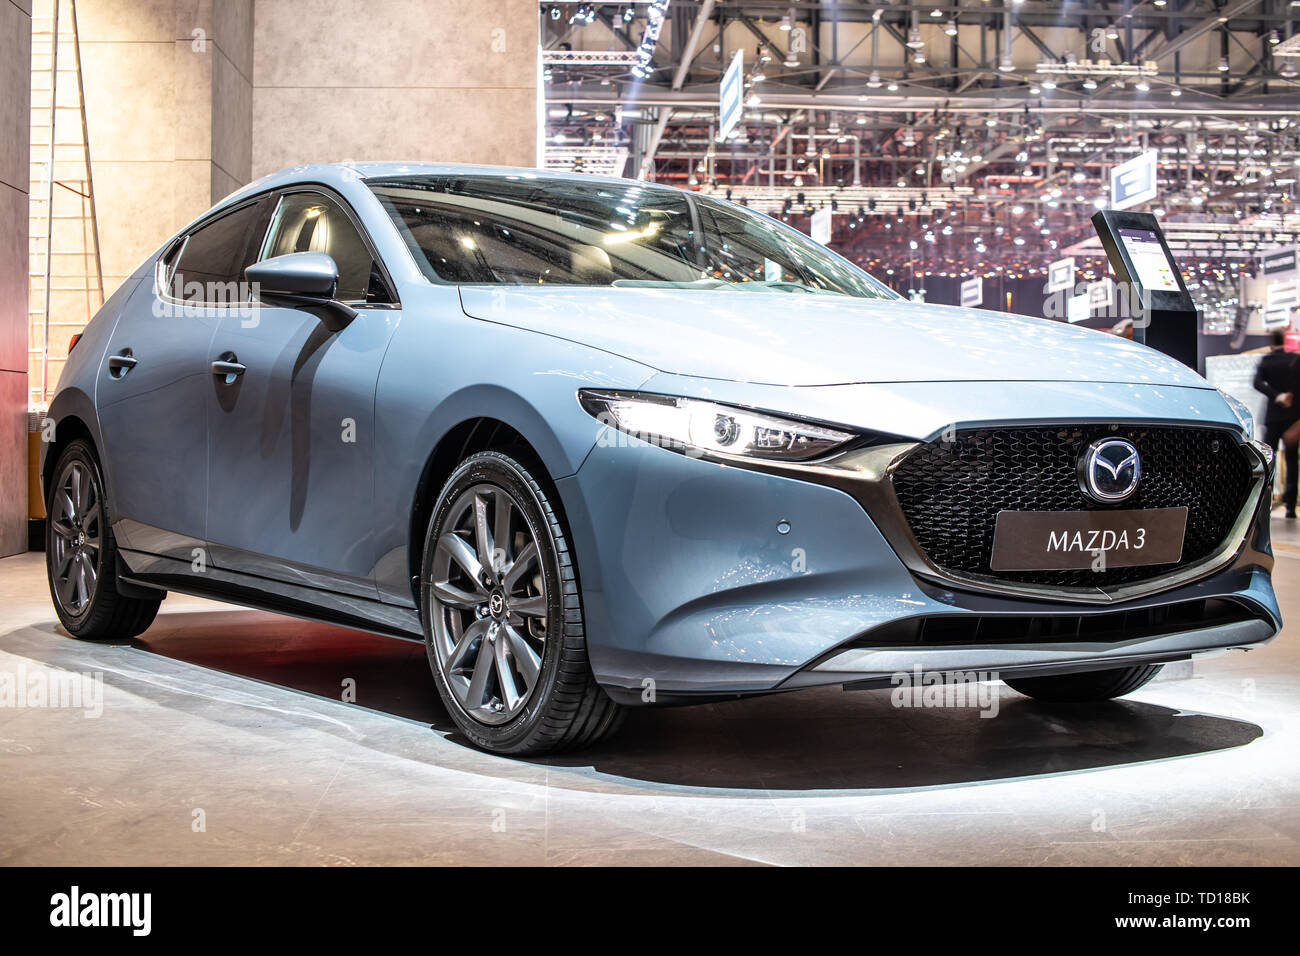 Geneva, Switzerland, March 04, 2019: all new Mazda 3 Fourth generation at Geneva International Motor Show, compact car manufactured in Japan by Mazda - Stock Image